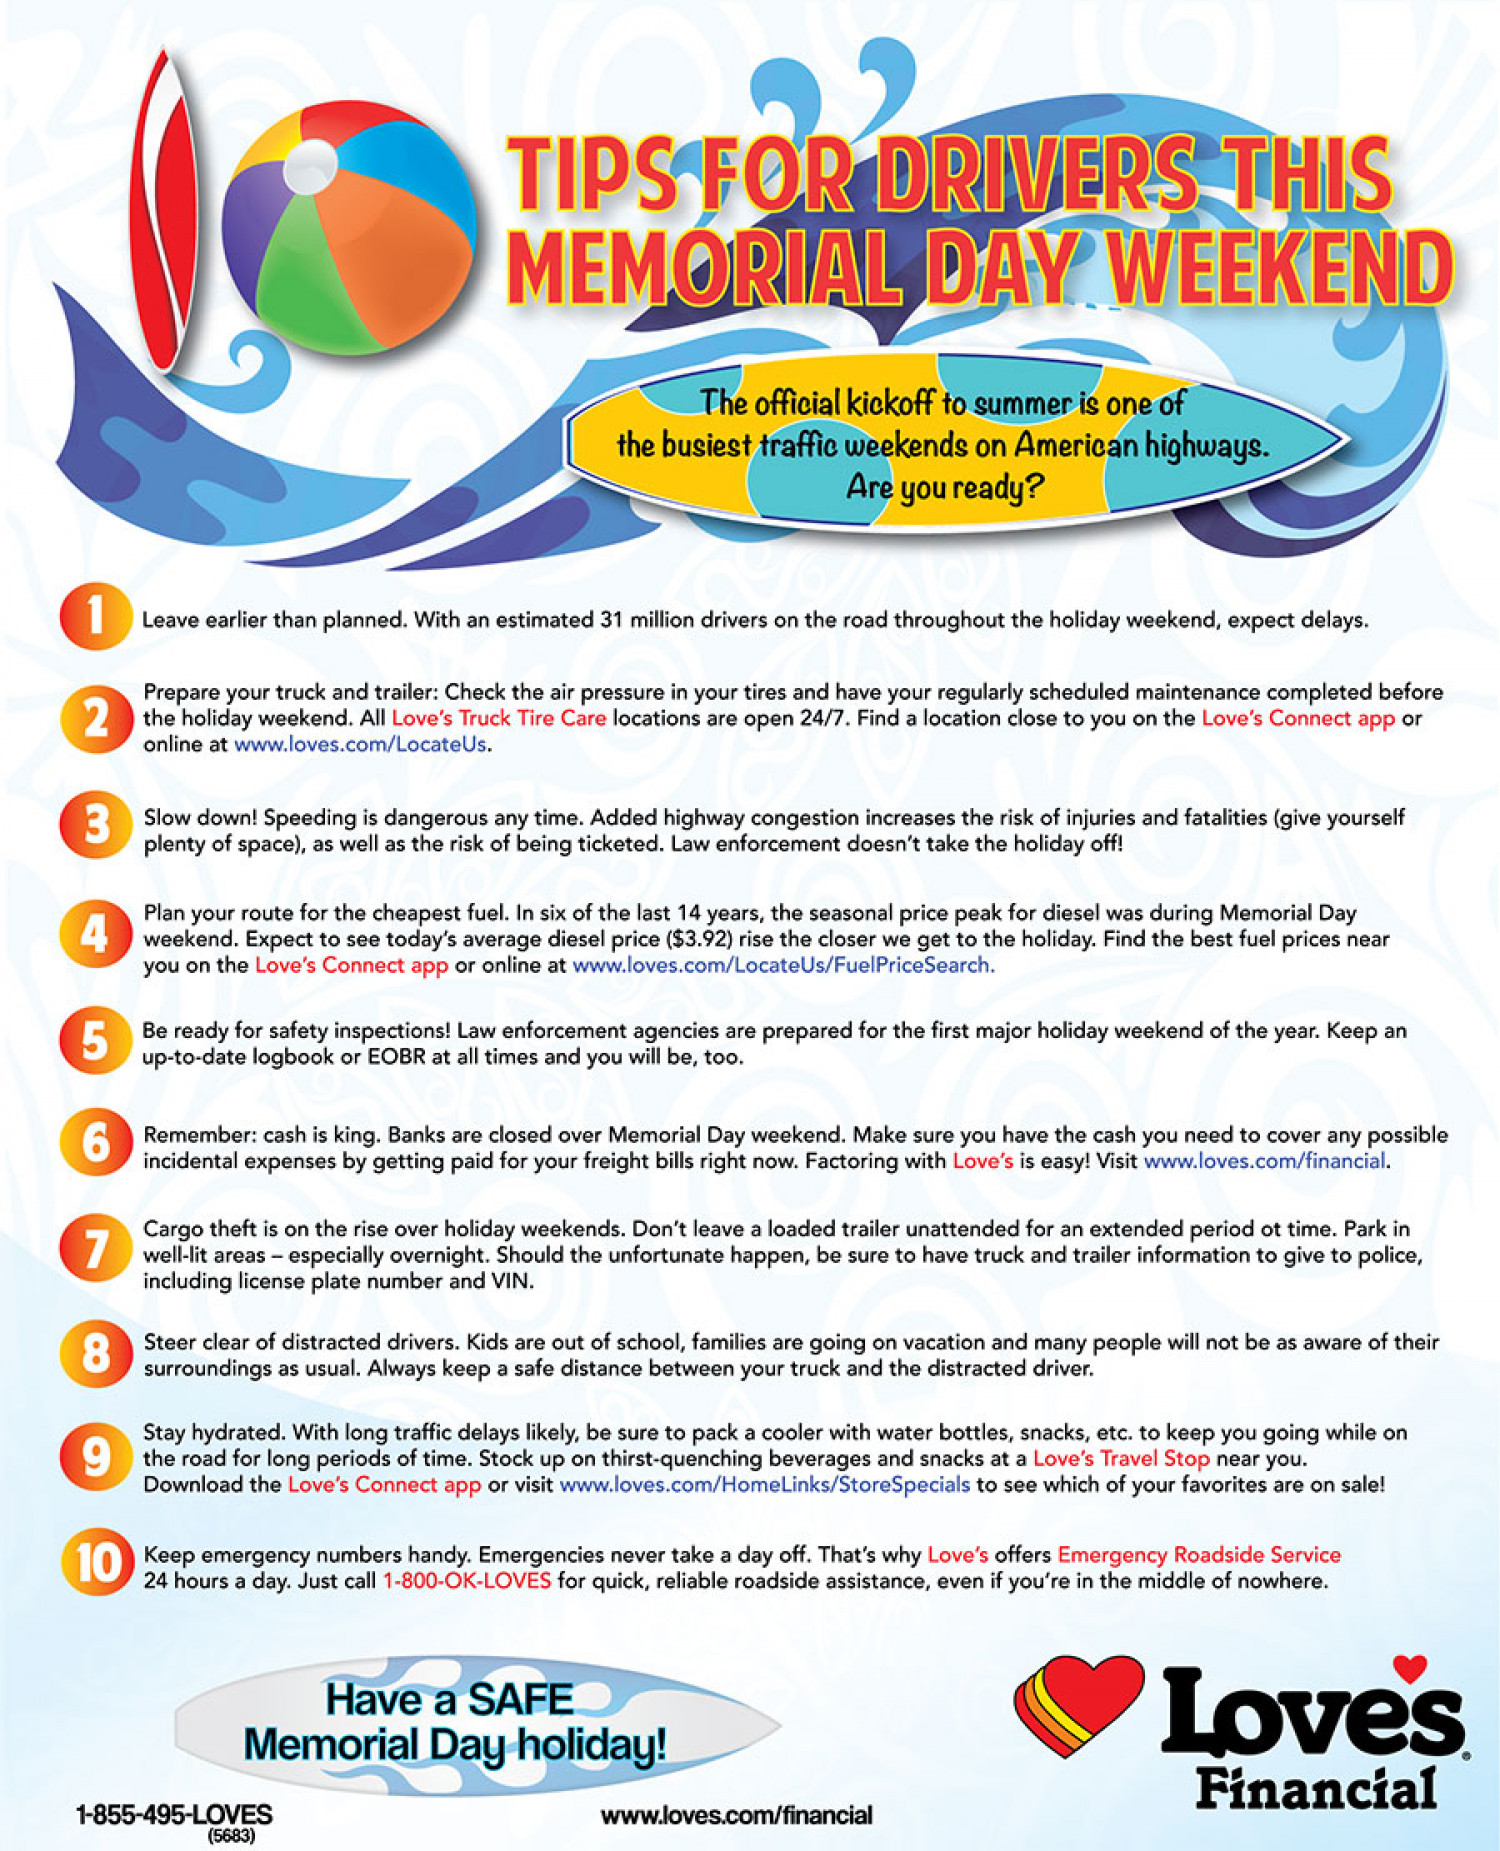 Tips for Professional Drivers This Memorial Day Weekend Infographic